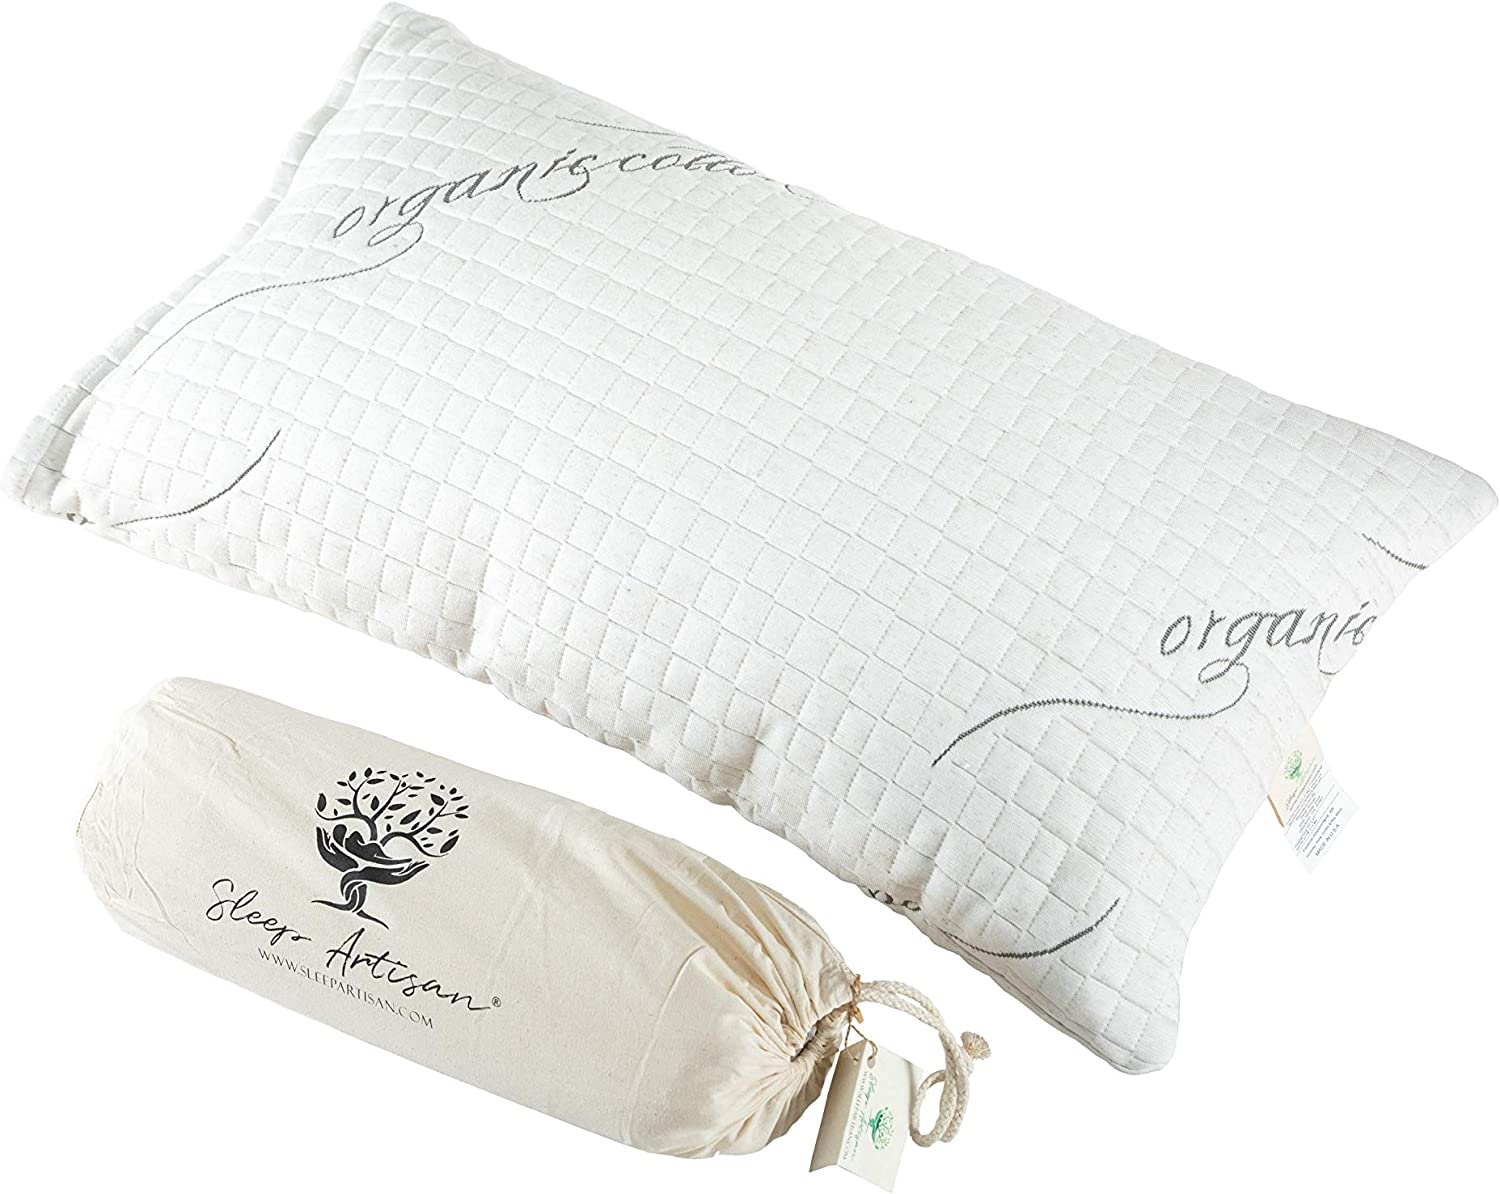 Outlet ☆ Free low-pricing Shipping Sleep Artisan Latex Pillow Queen Adjustable Size wit Pillows Bed